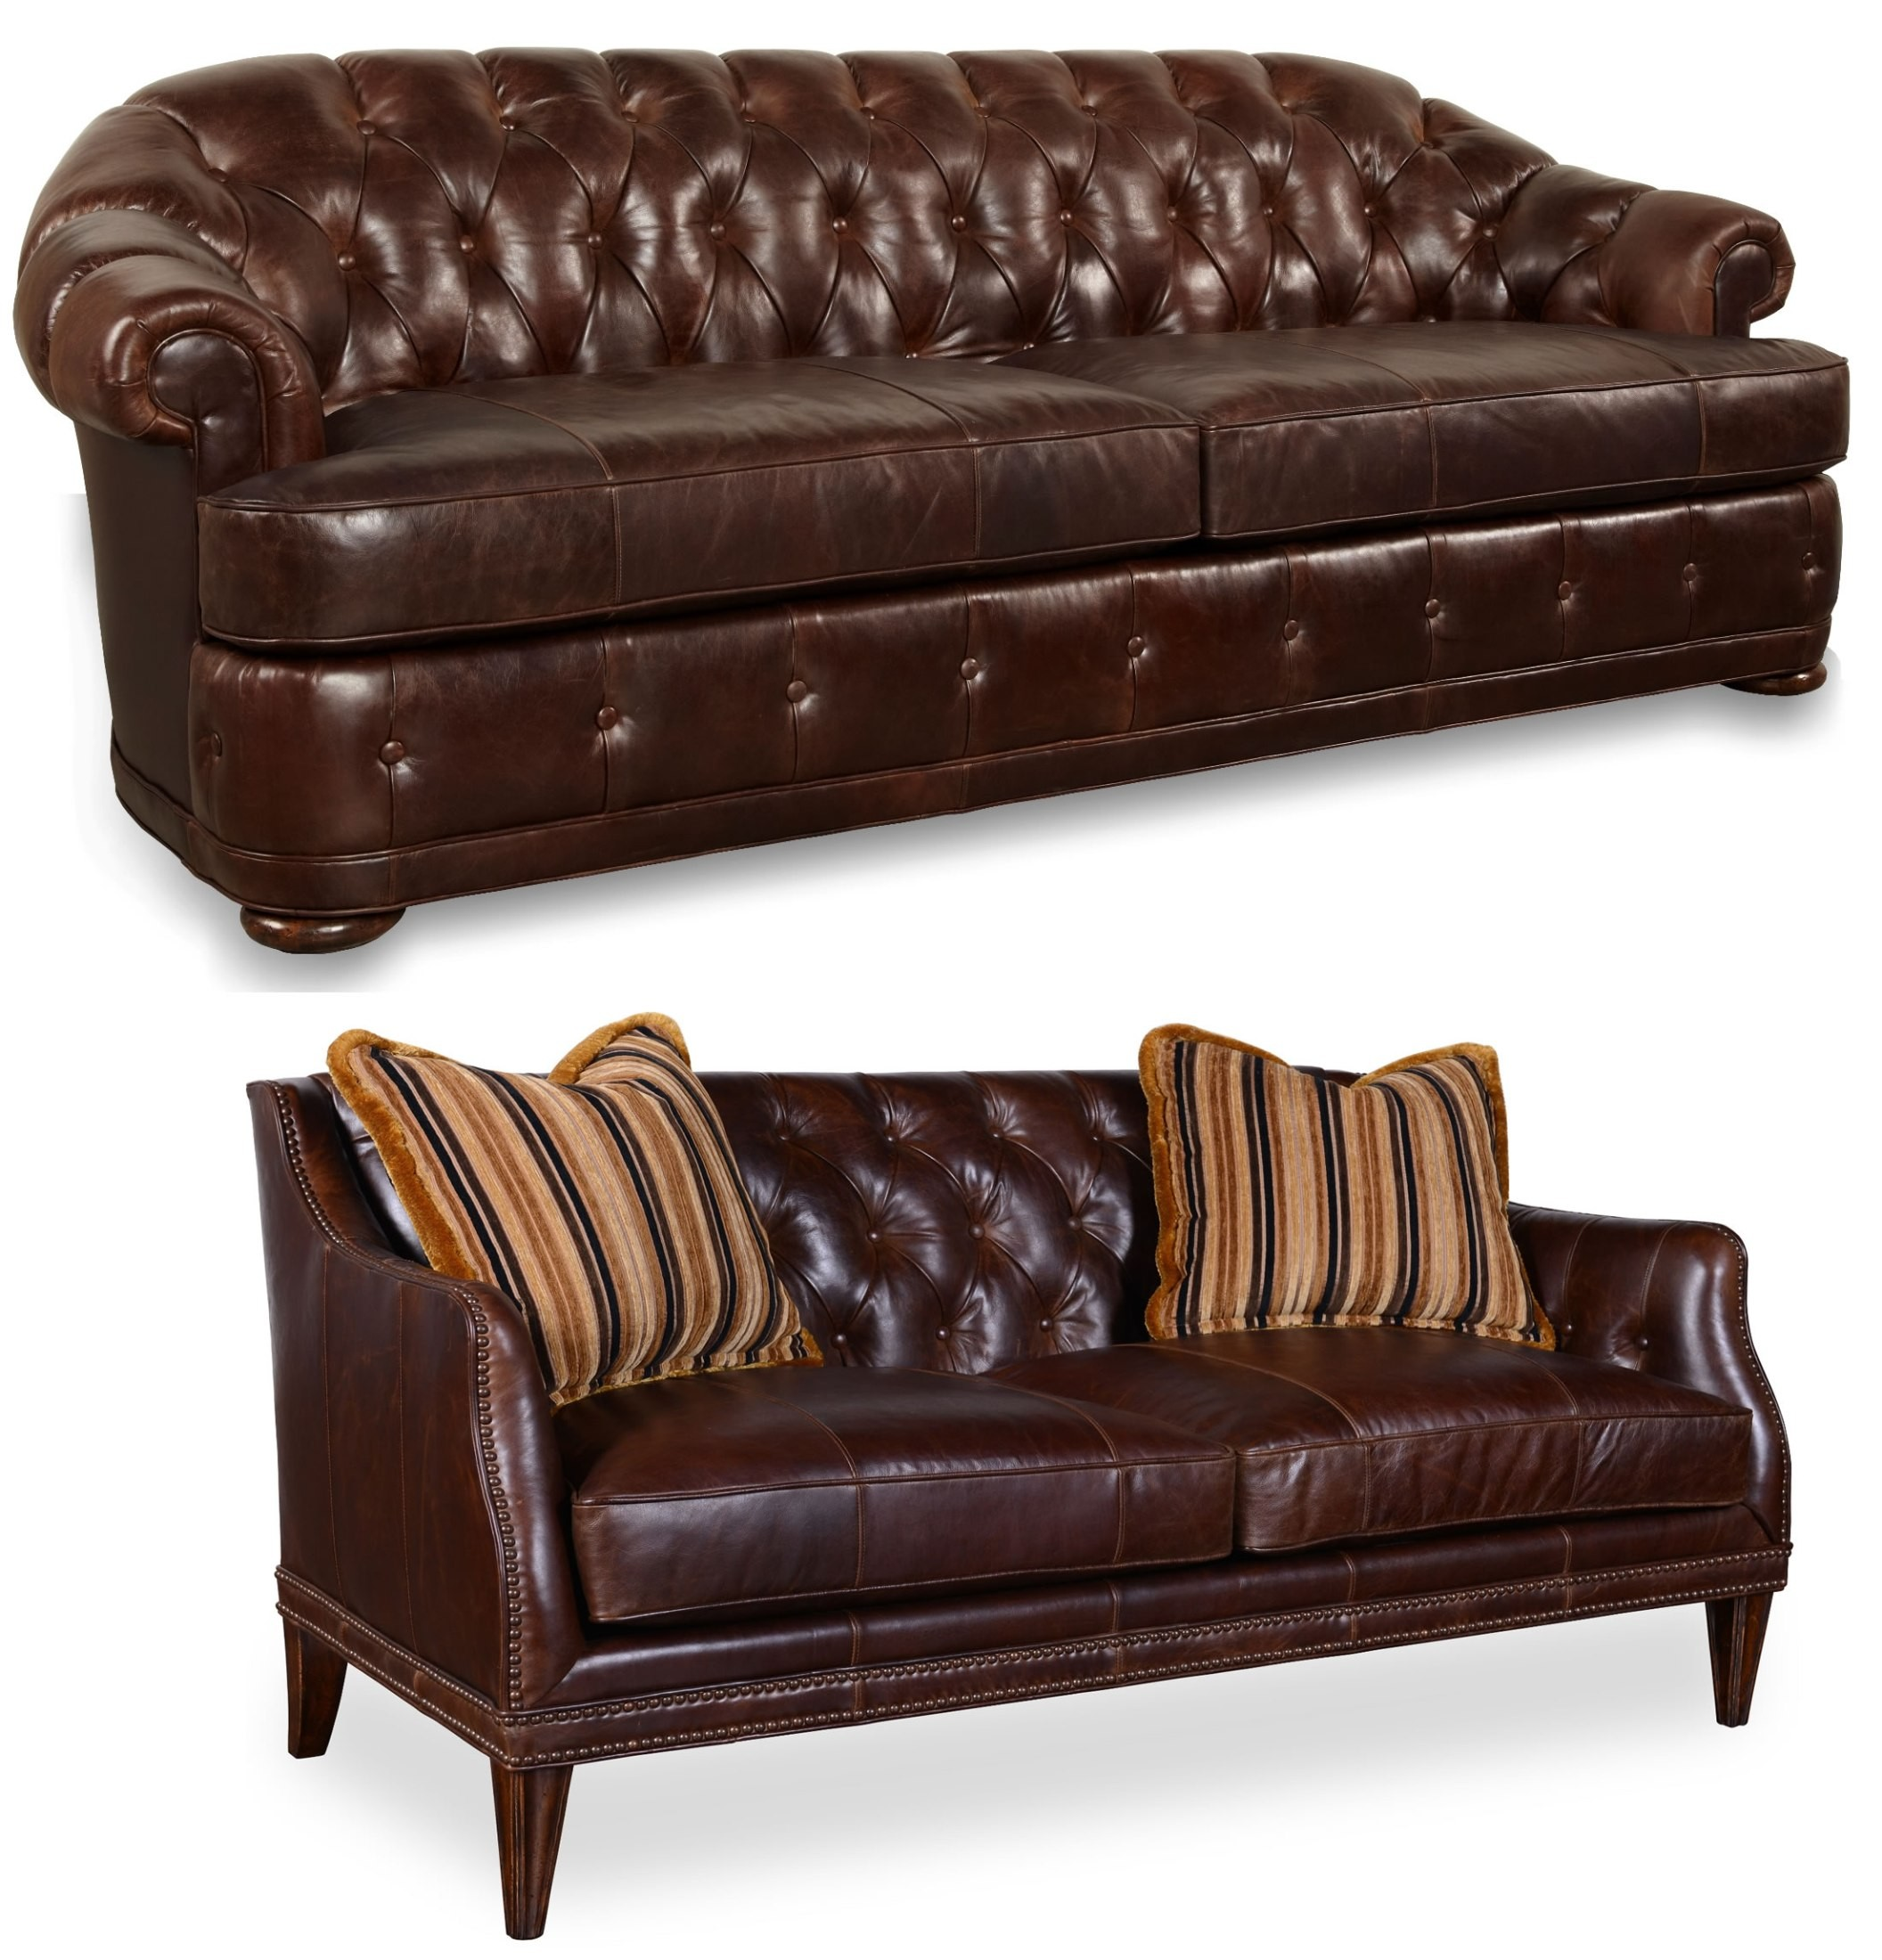 Kennedy Walnut Chesterfield Living Room Set From Art 505501 5004aa Coleman Furniture